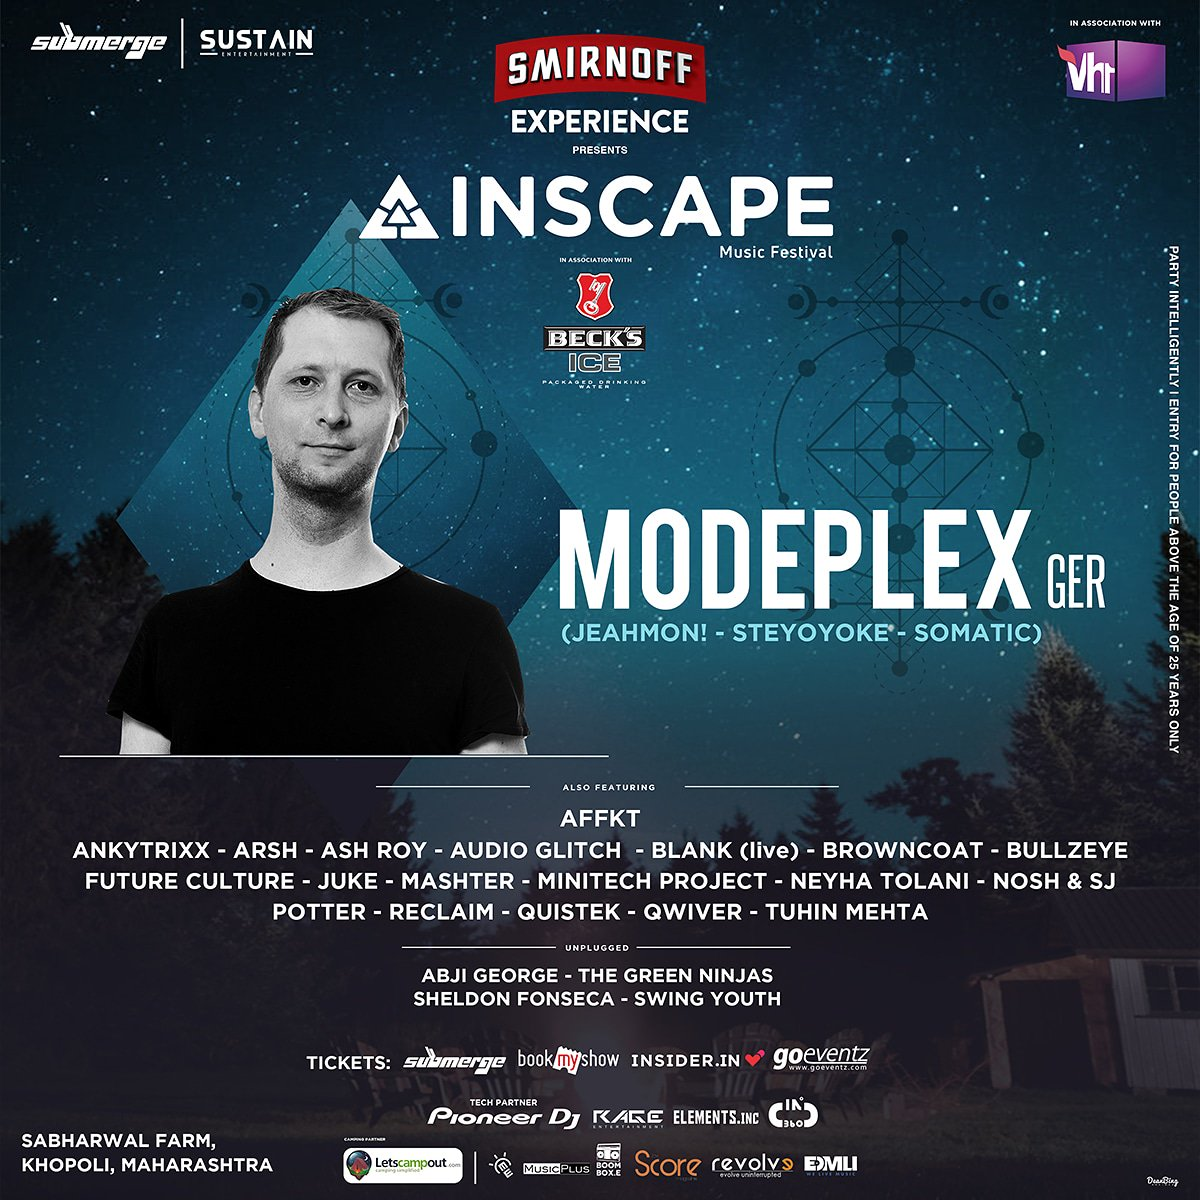 .@modeplex has developed a very personal way to compose, where different musical genres and scenes are the perfect ingredients to give birth to a wholesome kind of #techno and #deephouse. Catch him playing on Day 1 this weekend at Inscape 2018!  Tickets https://t.co/01EKSgKpk6